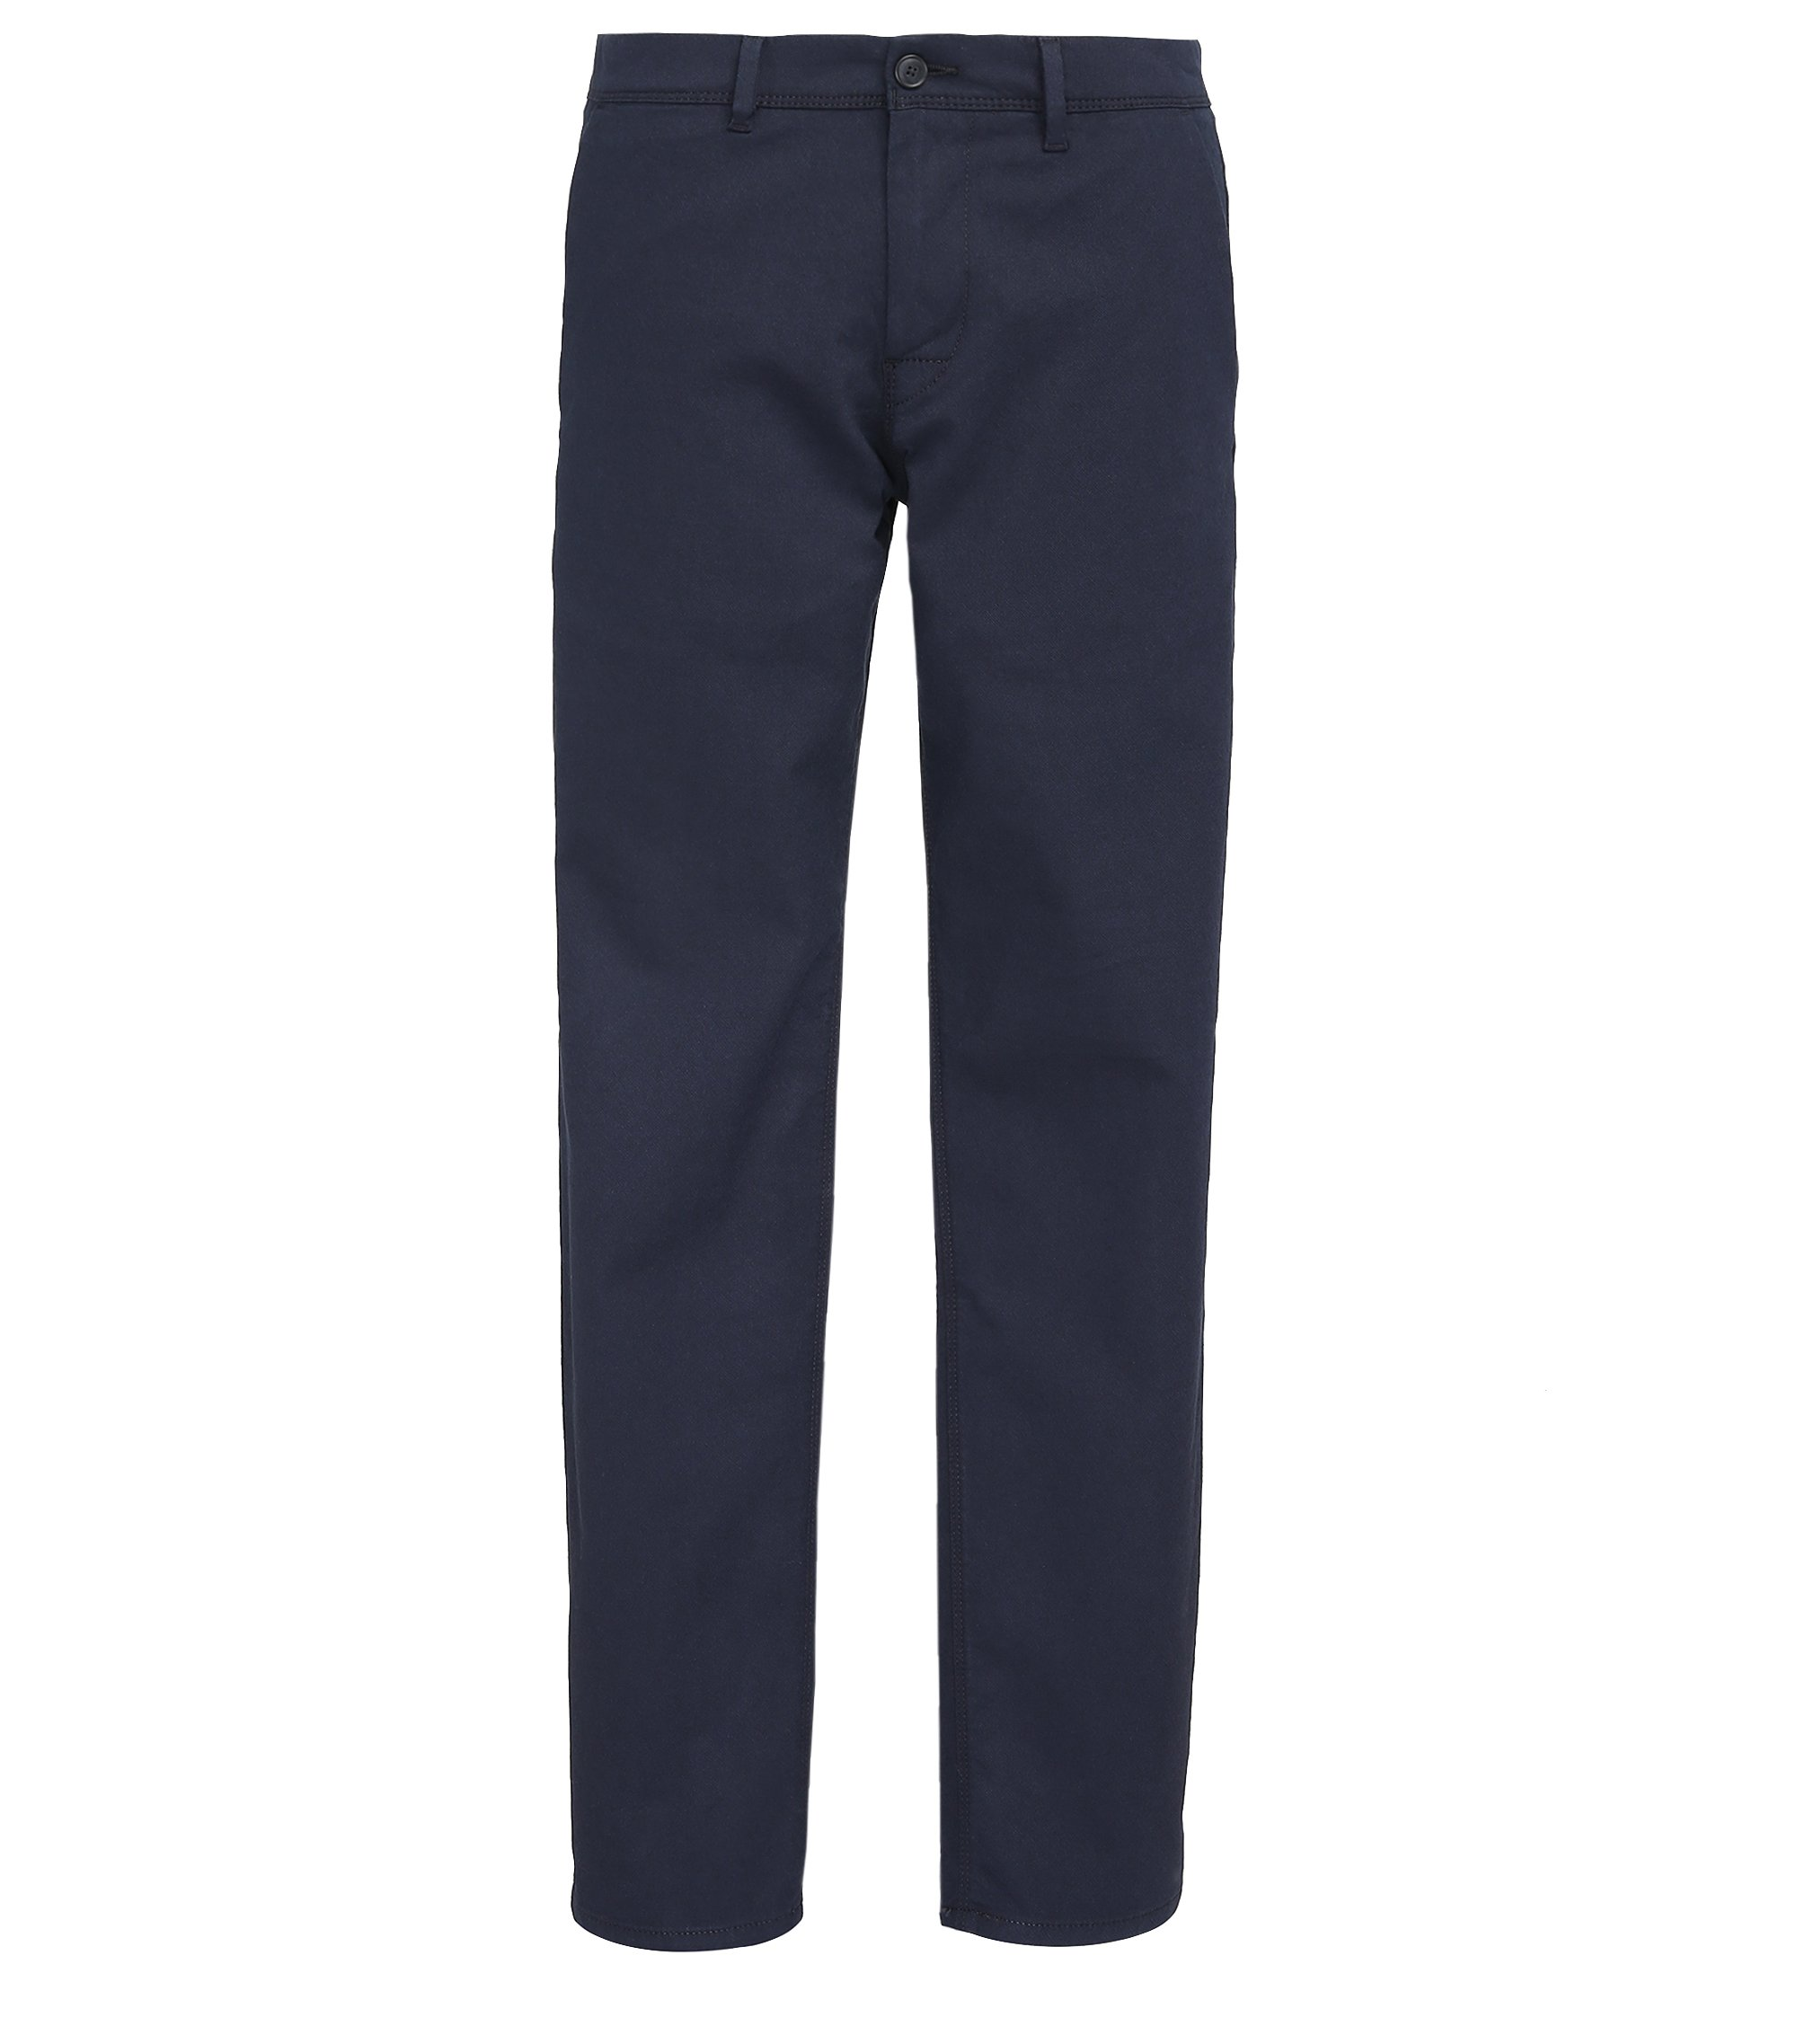 Pantalon Tapered Fit en coton stretch, Bleu foncé